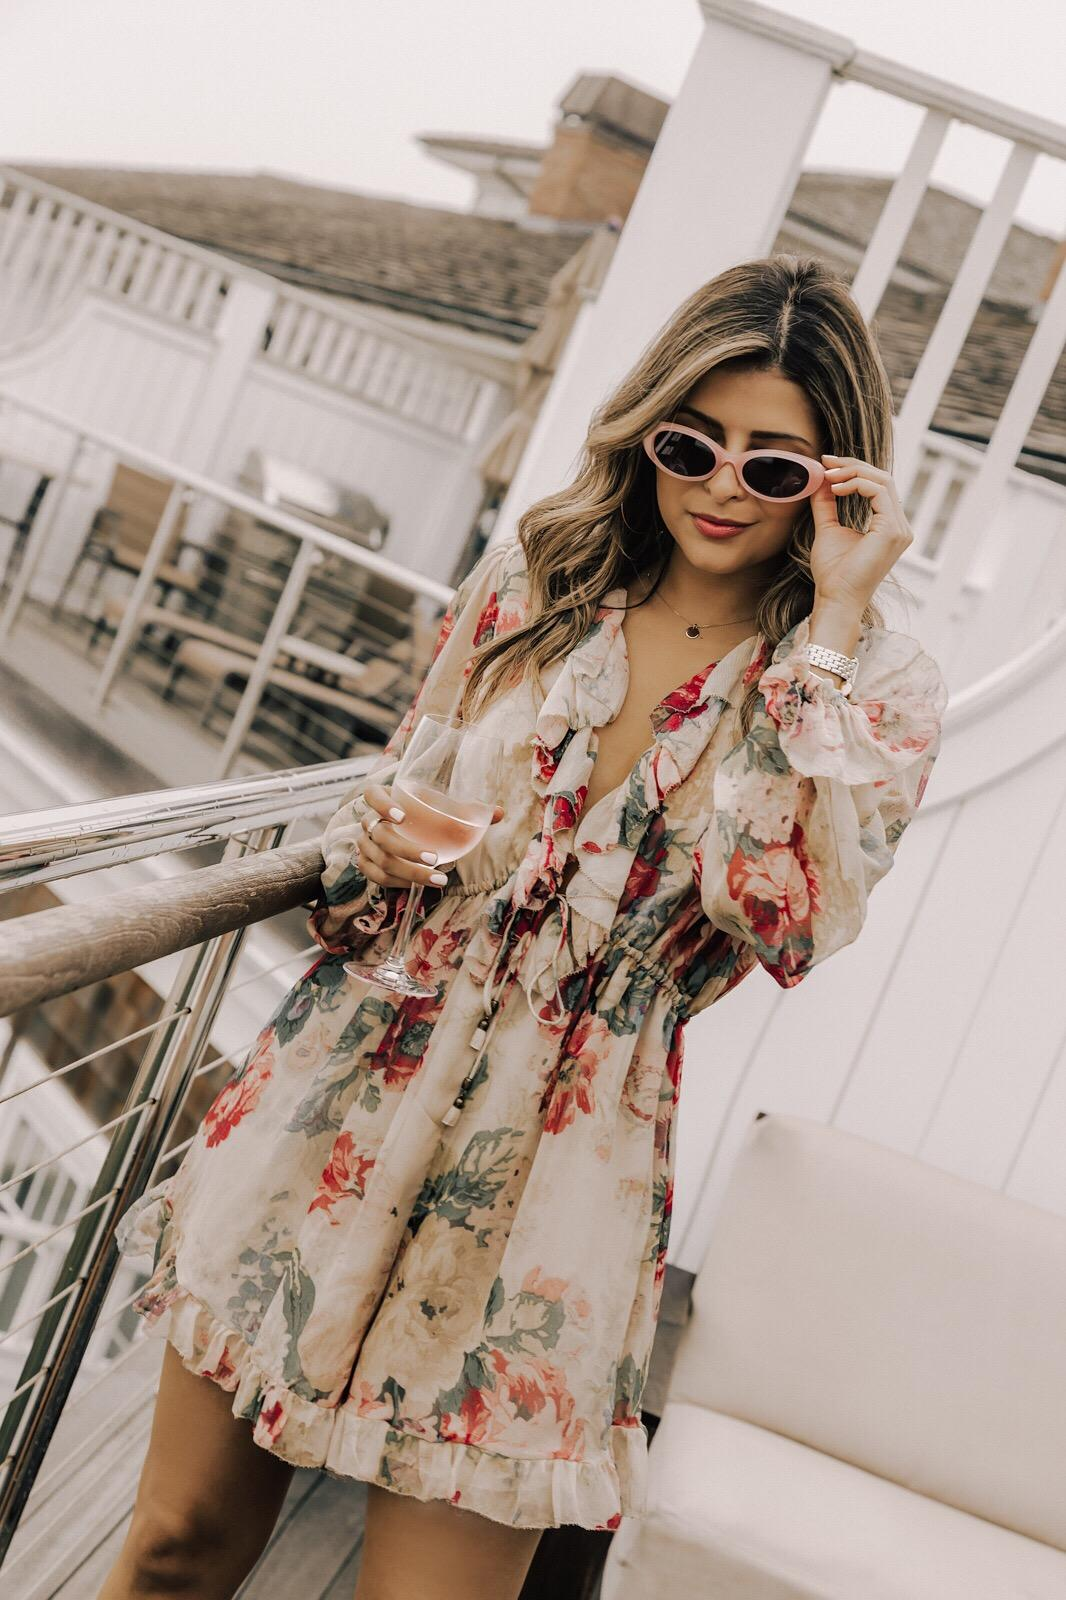 What to Wear to The Hamptons by Pam Hetlinger | Summer Fridays Hamptons Trip, Top LA Bloggers, Pam Hetlinger Style, Ruffle jumpsuit, oval sunglasses, Floral Ruffle Romper, Zimmerman Outfit, Chic Beach Look | TheGirlFromPanama.com